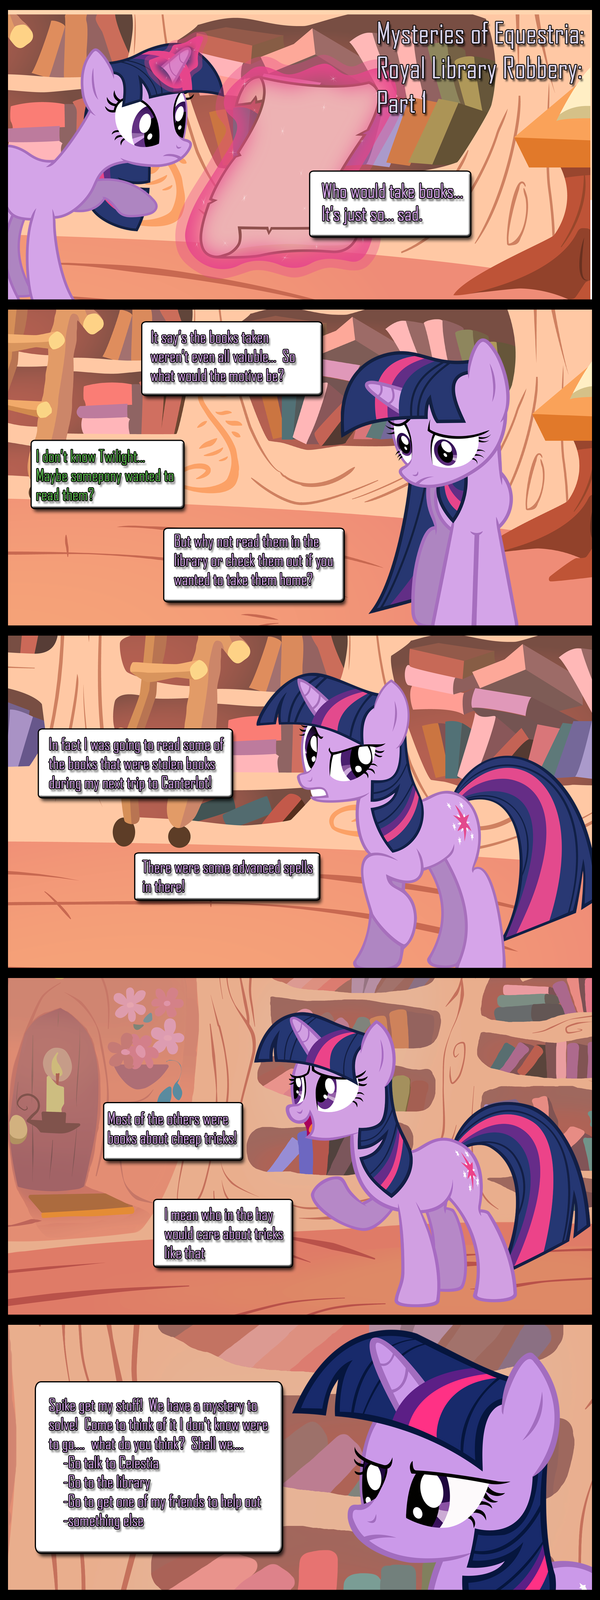 Mysteries of Equestria: Library Robbery: Part 1